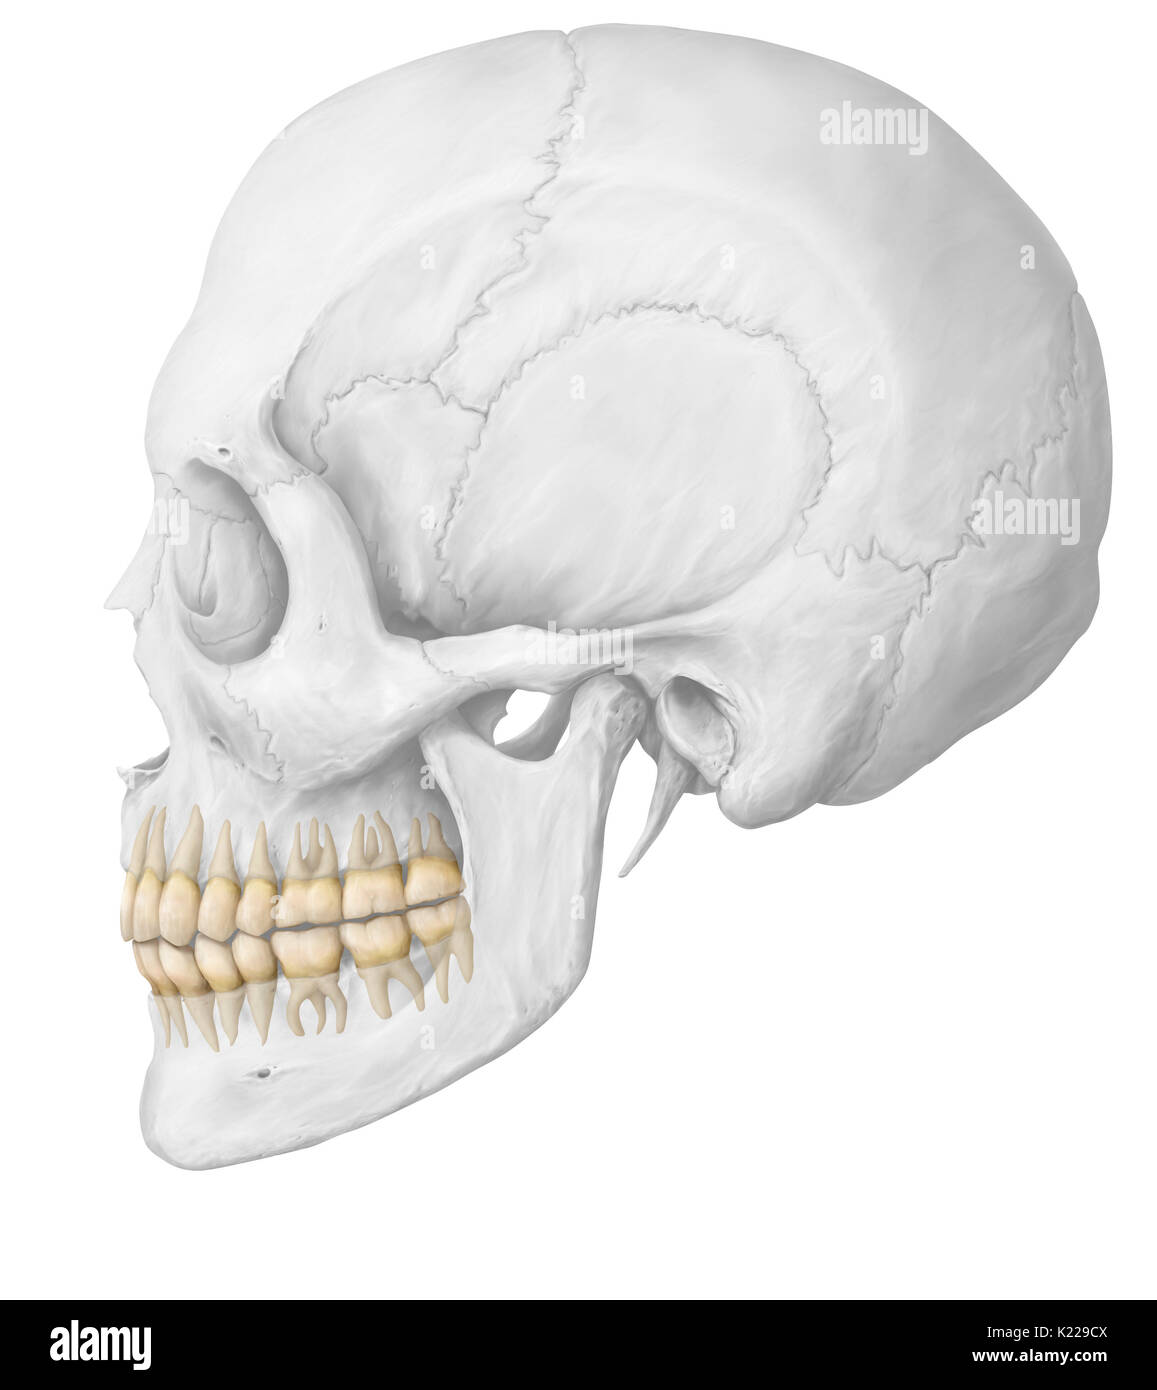 Wisdom teeth are the third molars. They rarely appear before 18 years of age and may even only partially appear or never appear at all. - Stock Image